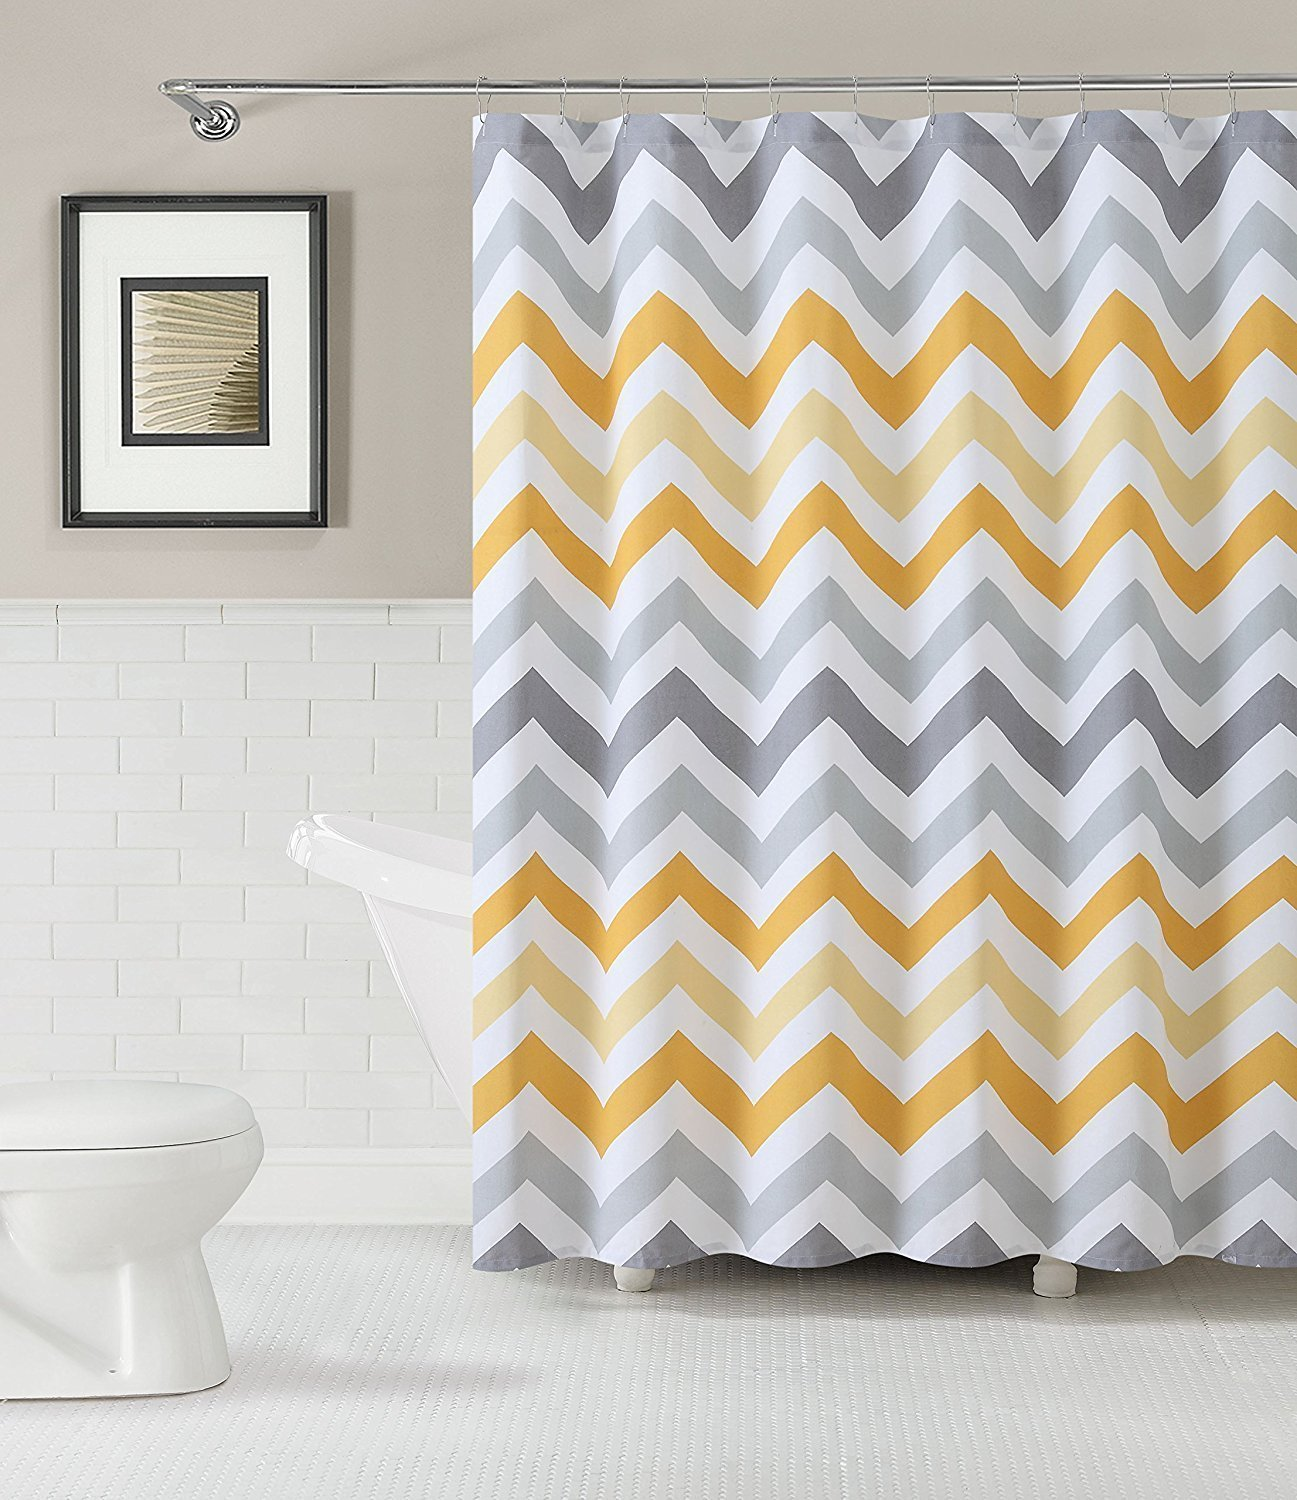 Us 16 01 40 Off Chevron Zigzag Pattern Bathroom Decoration Waterproof Polyester Fabric Shower Curtain Yellow Shower Curtains In Shower Curtains From